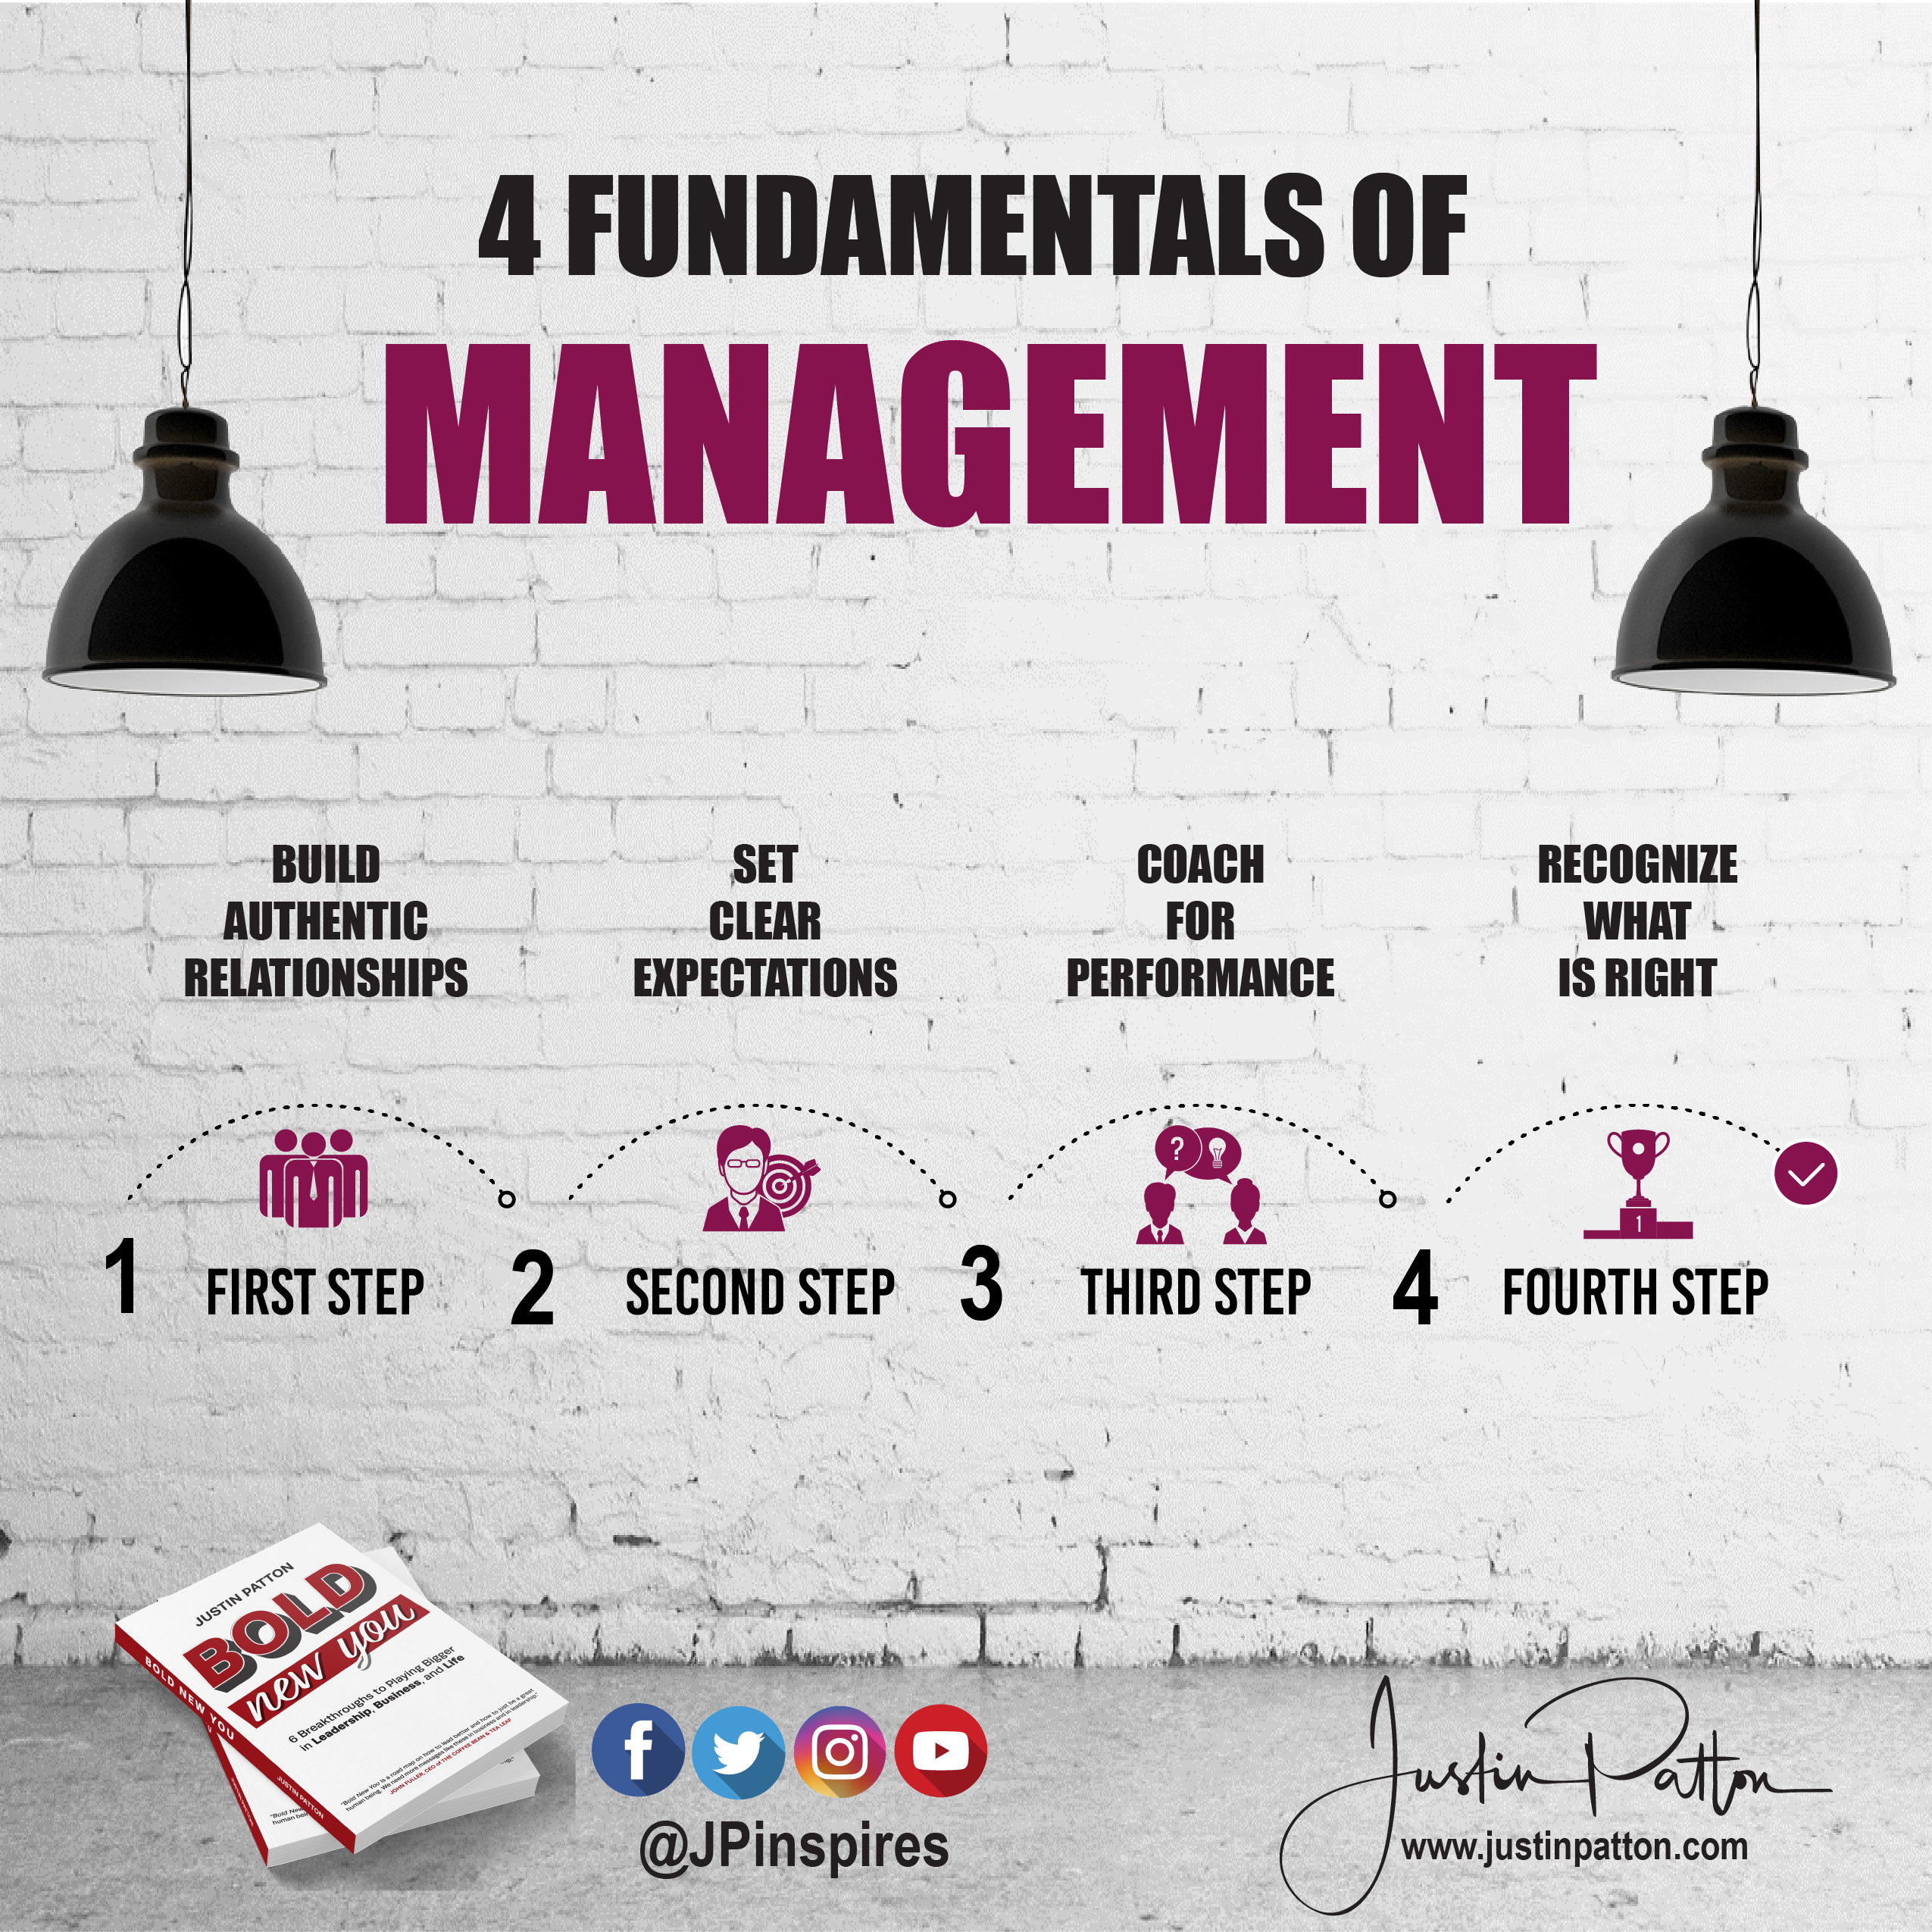 4 Fundamentals of Management